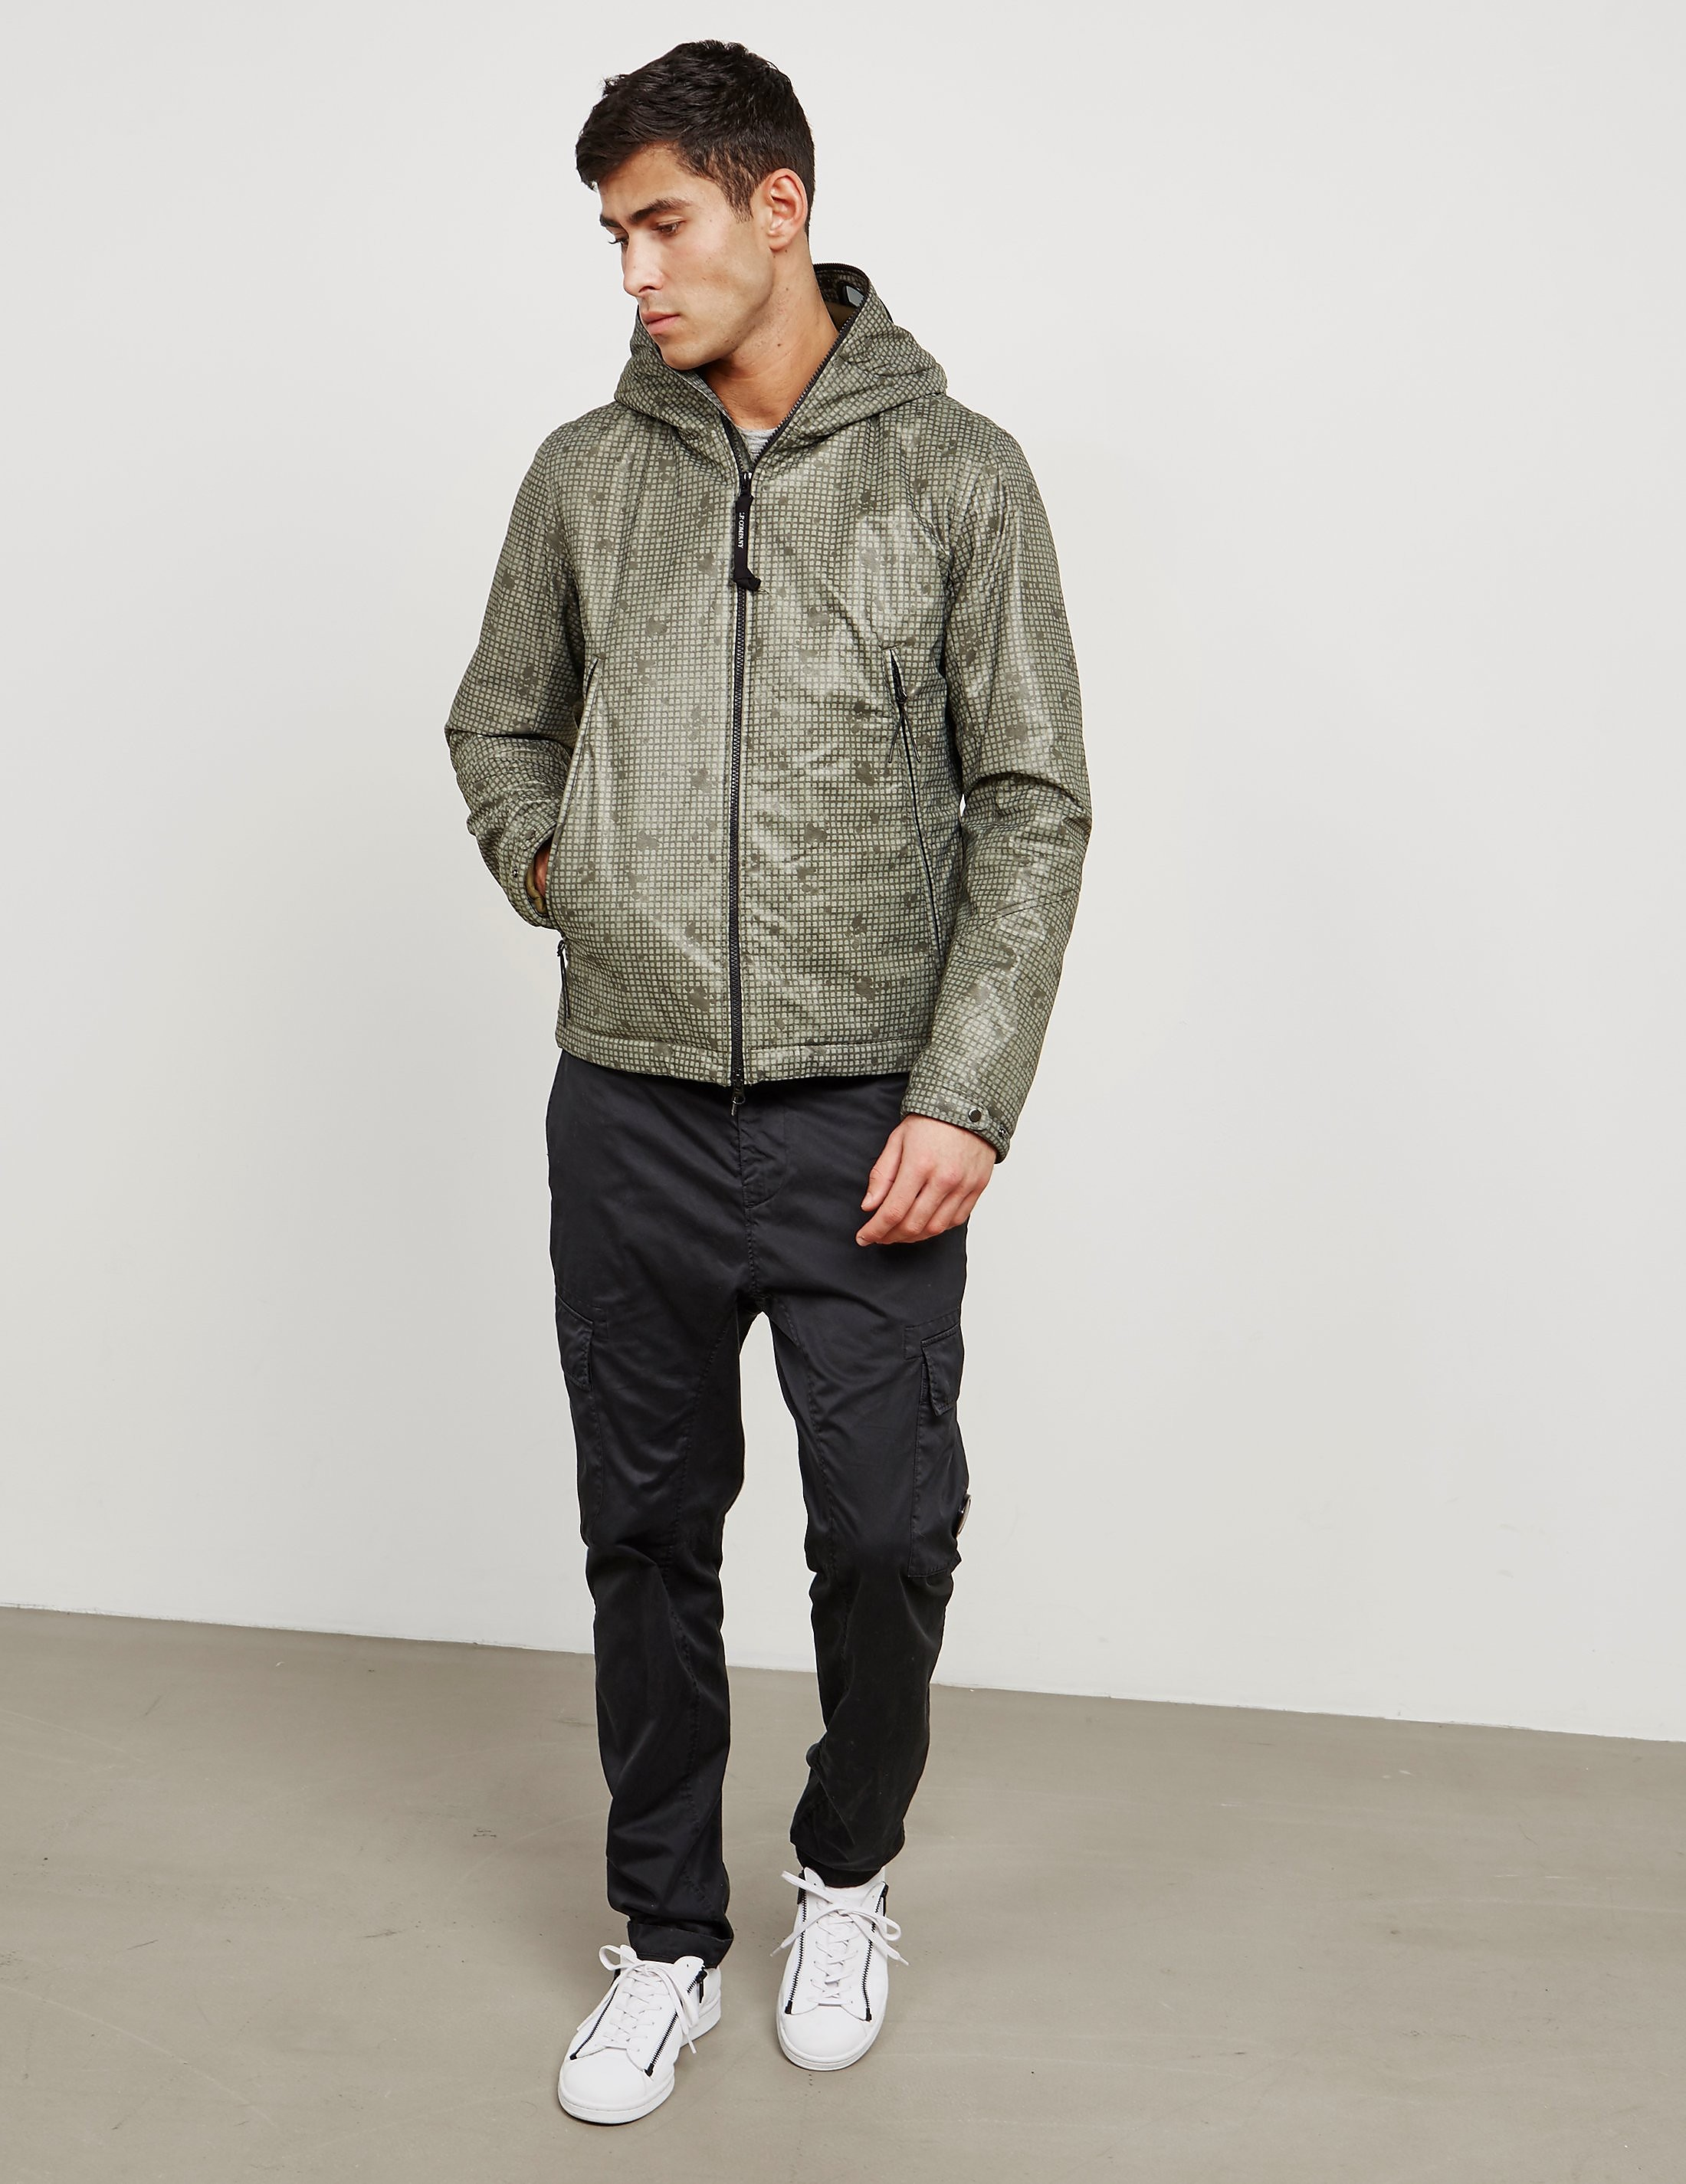 CP Company Camo Google Lightweight Jacket - Online Exclusive